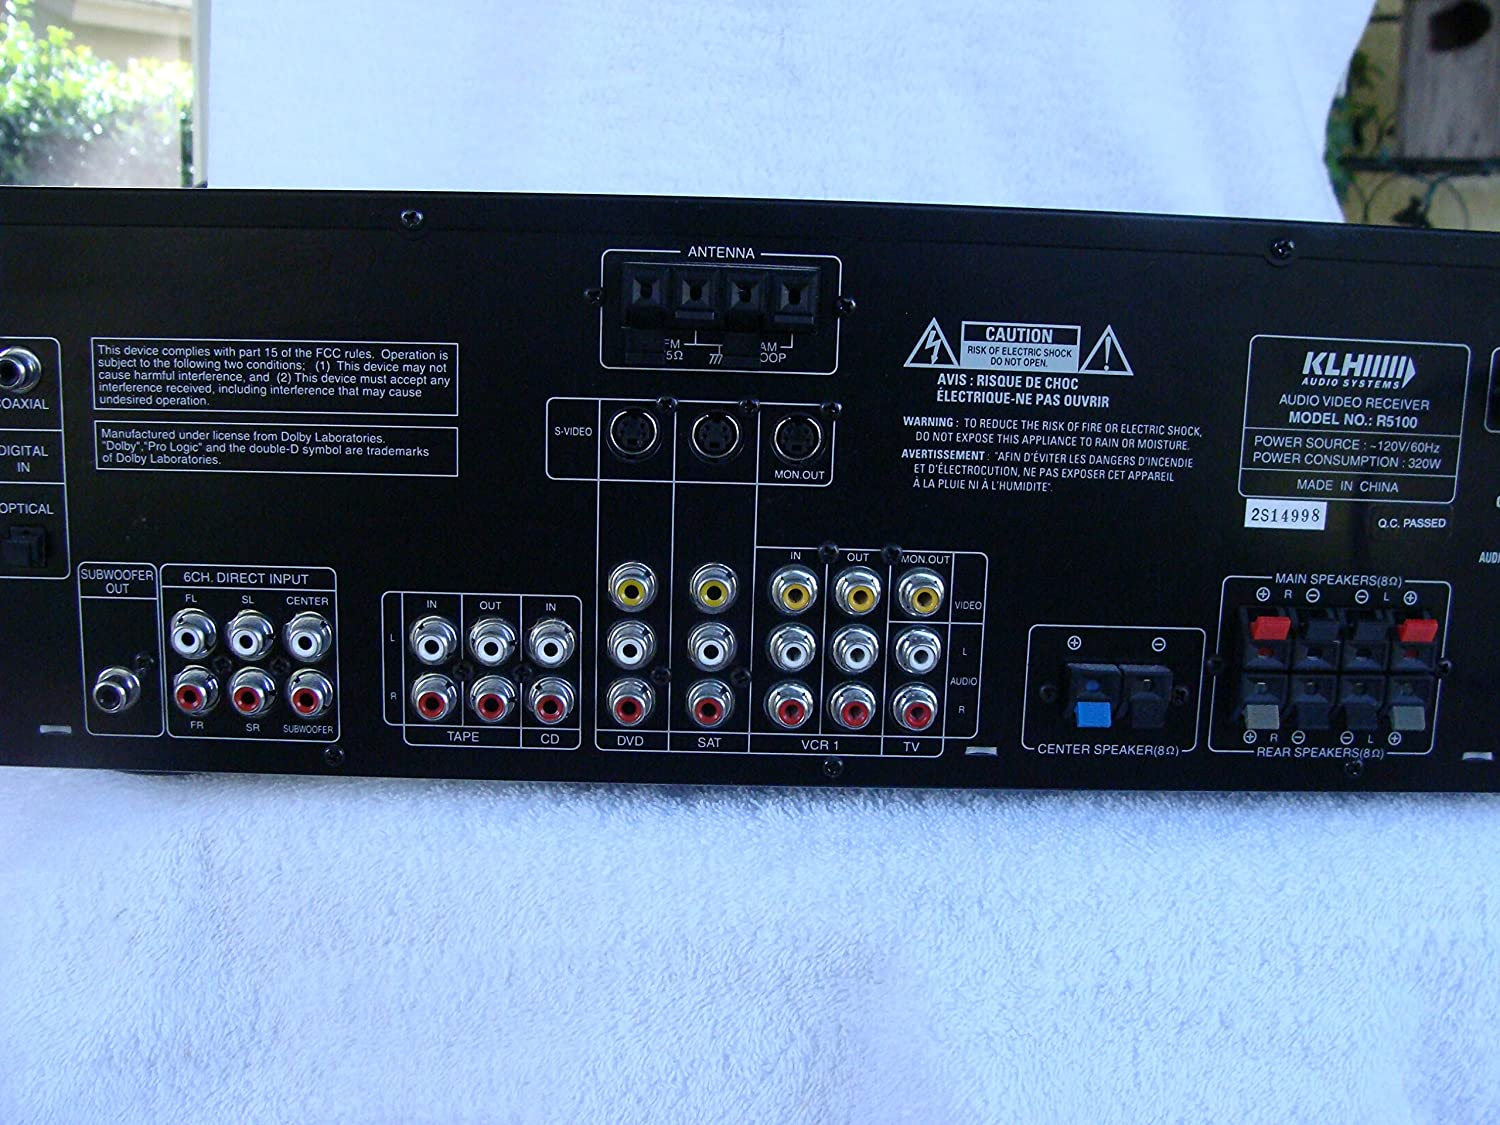 Amazon.com: KLH R5100 Surround Sound Receiver w/ Manual, Remote & Cable: Electronics